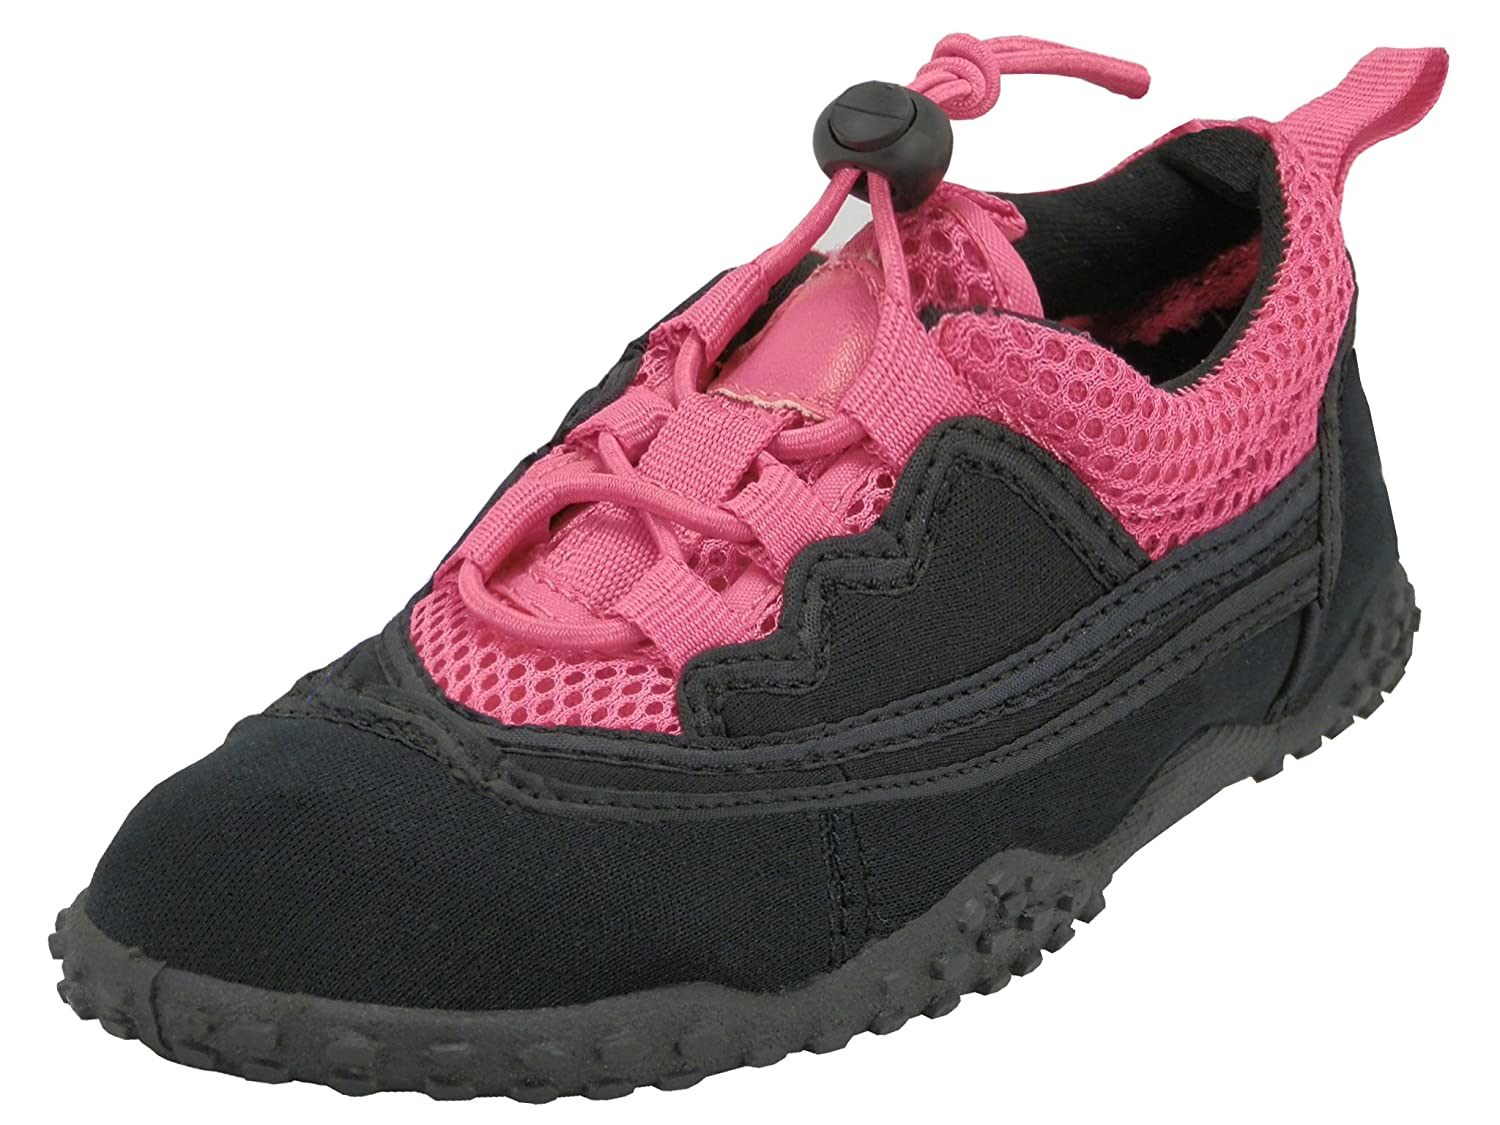 bf8a3c6a12ed Amazon.com  Easy USA Youth Water Shoes (4 M US Little Kid